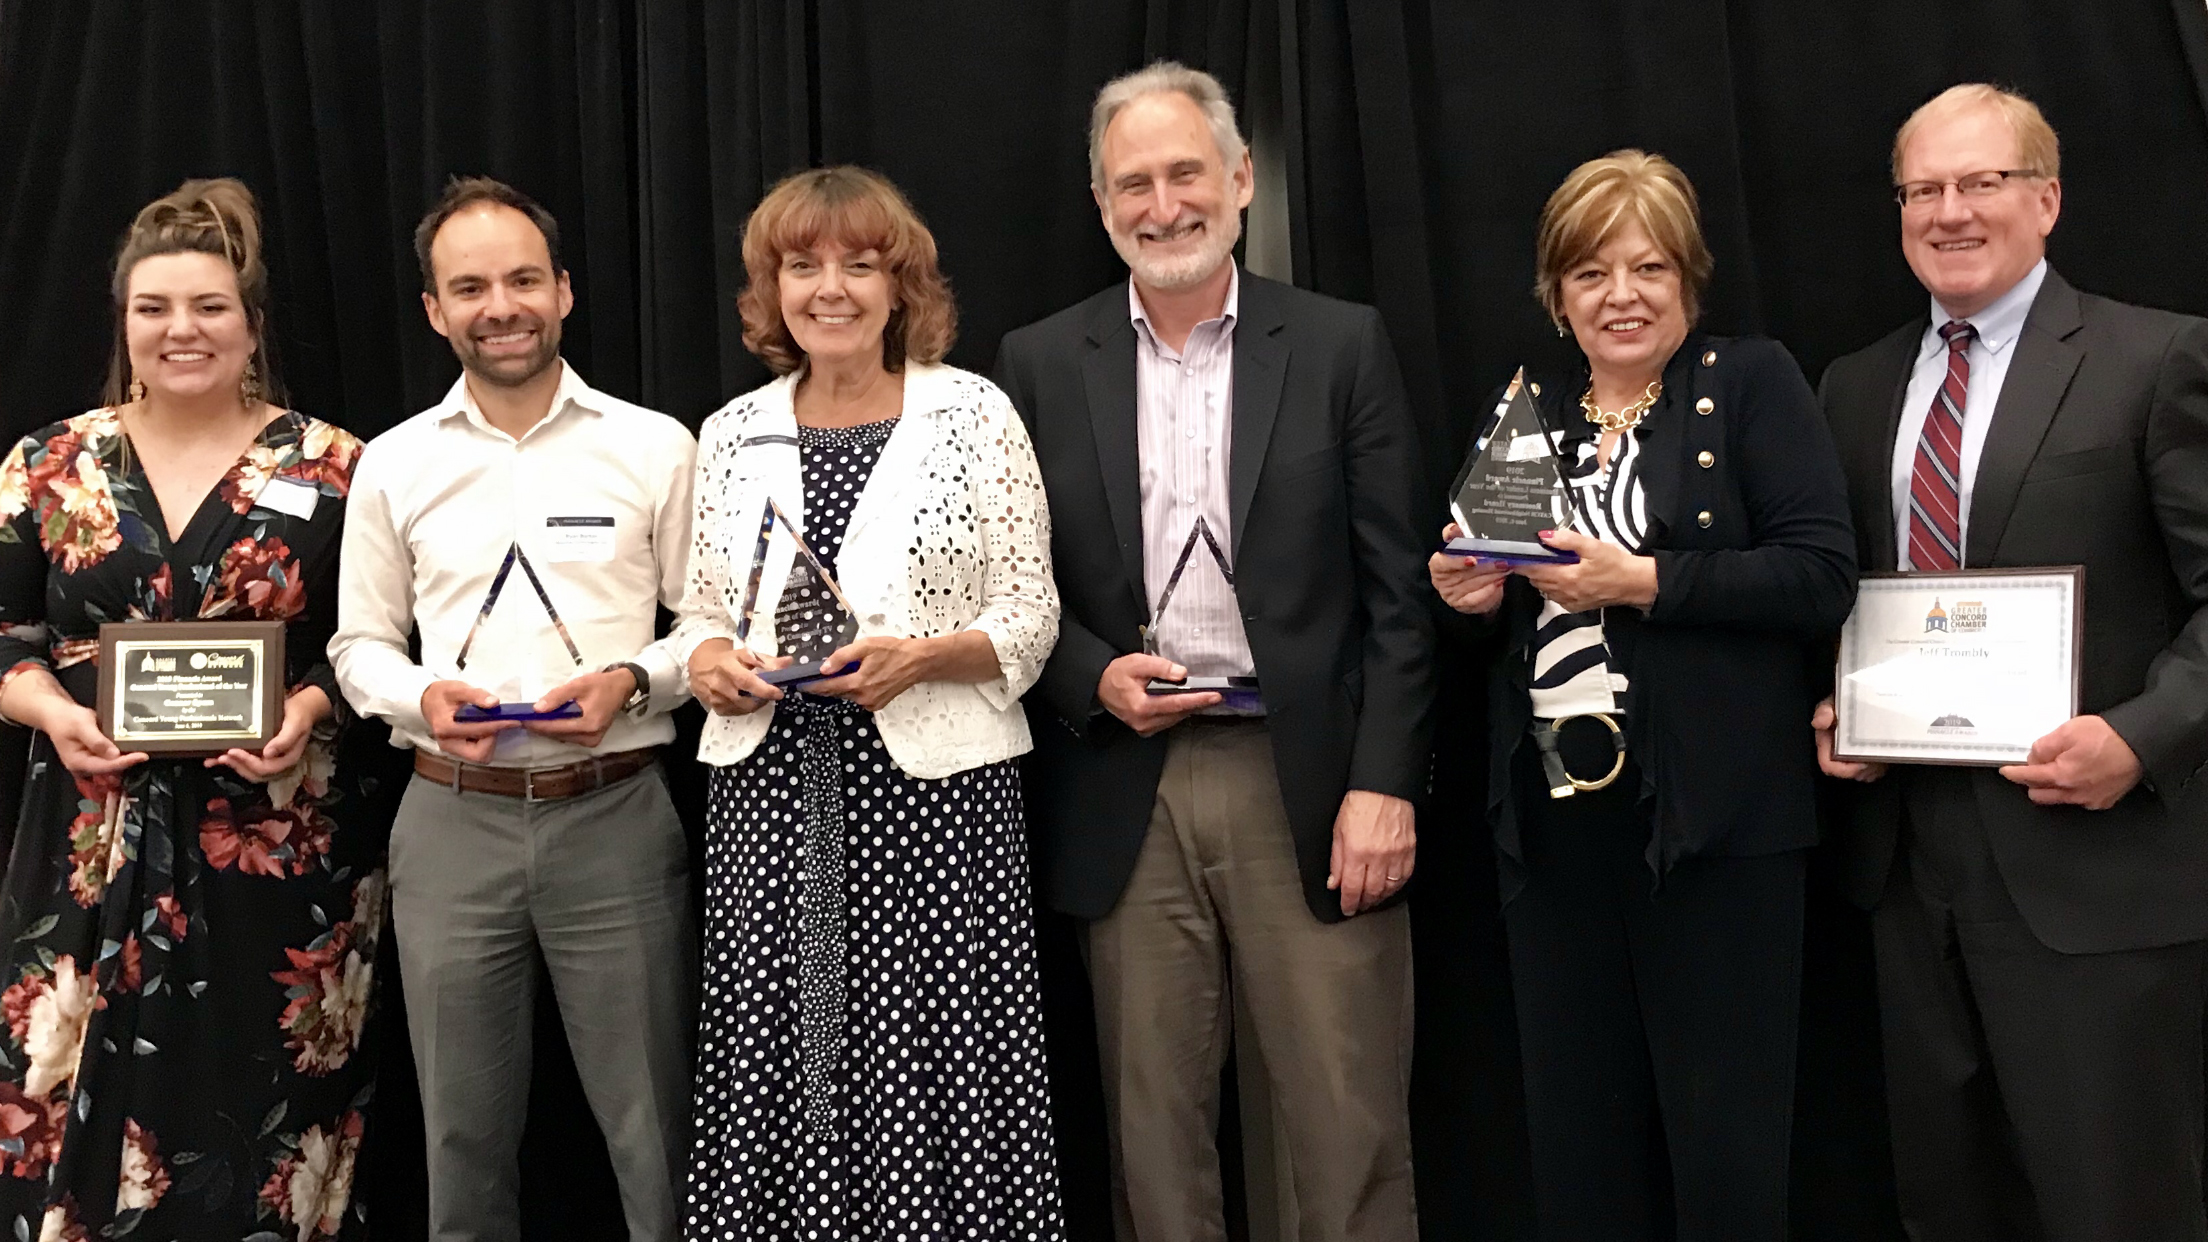 The Greater Concord Chamber of Commerce honors individuals and businesses who serve Capital area and Chamber at its 14th Annual Pinnacle Awards on June 6, 2019.